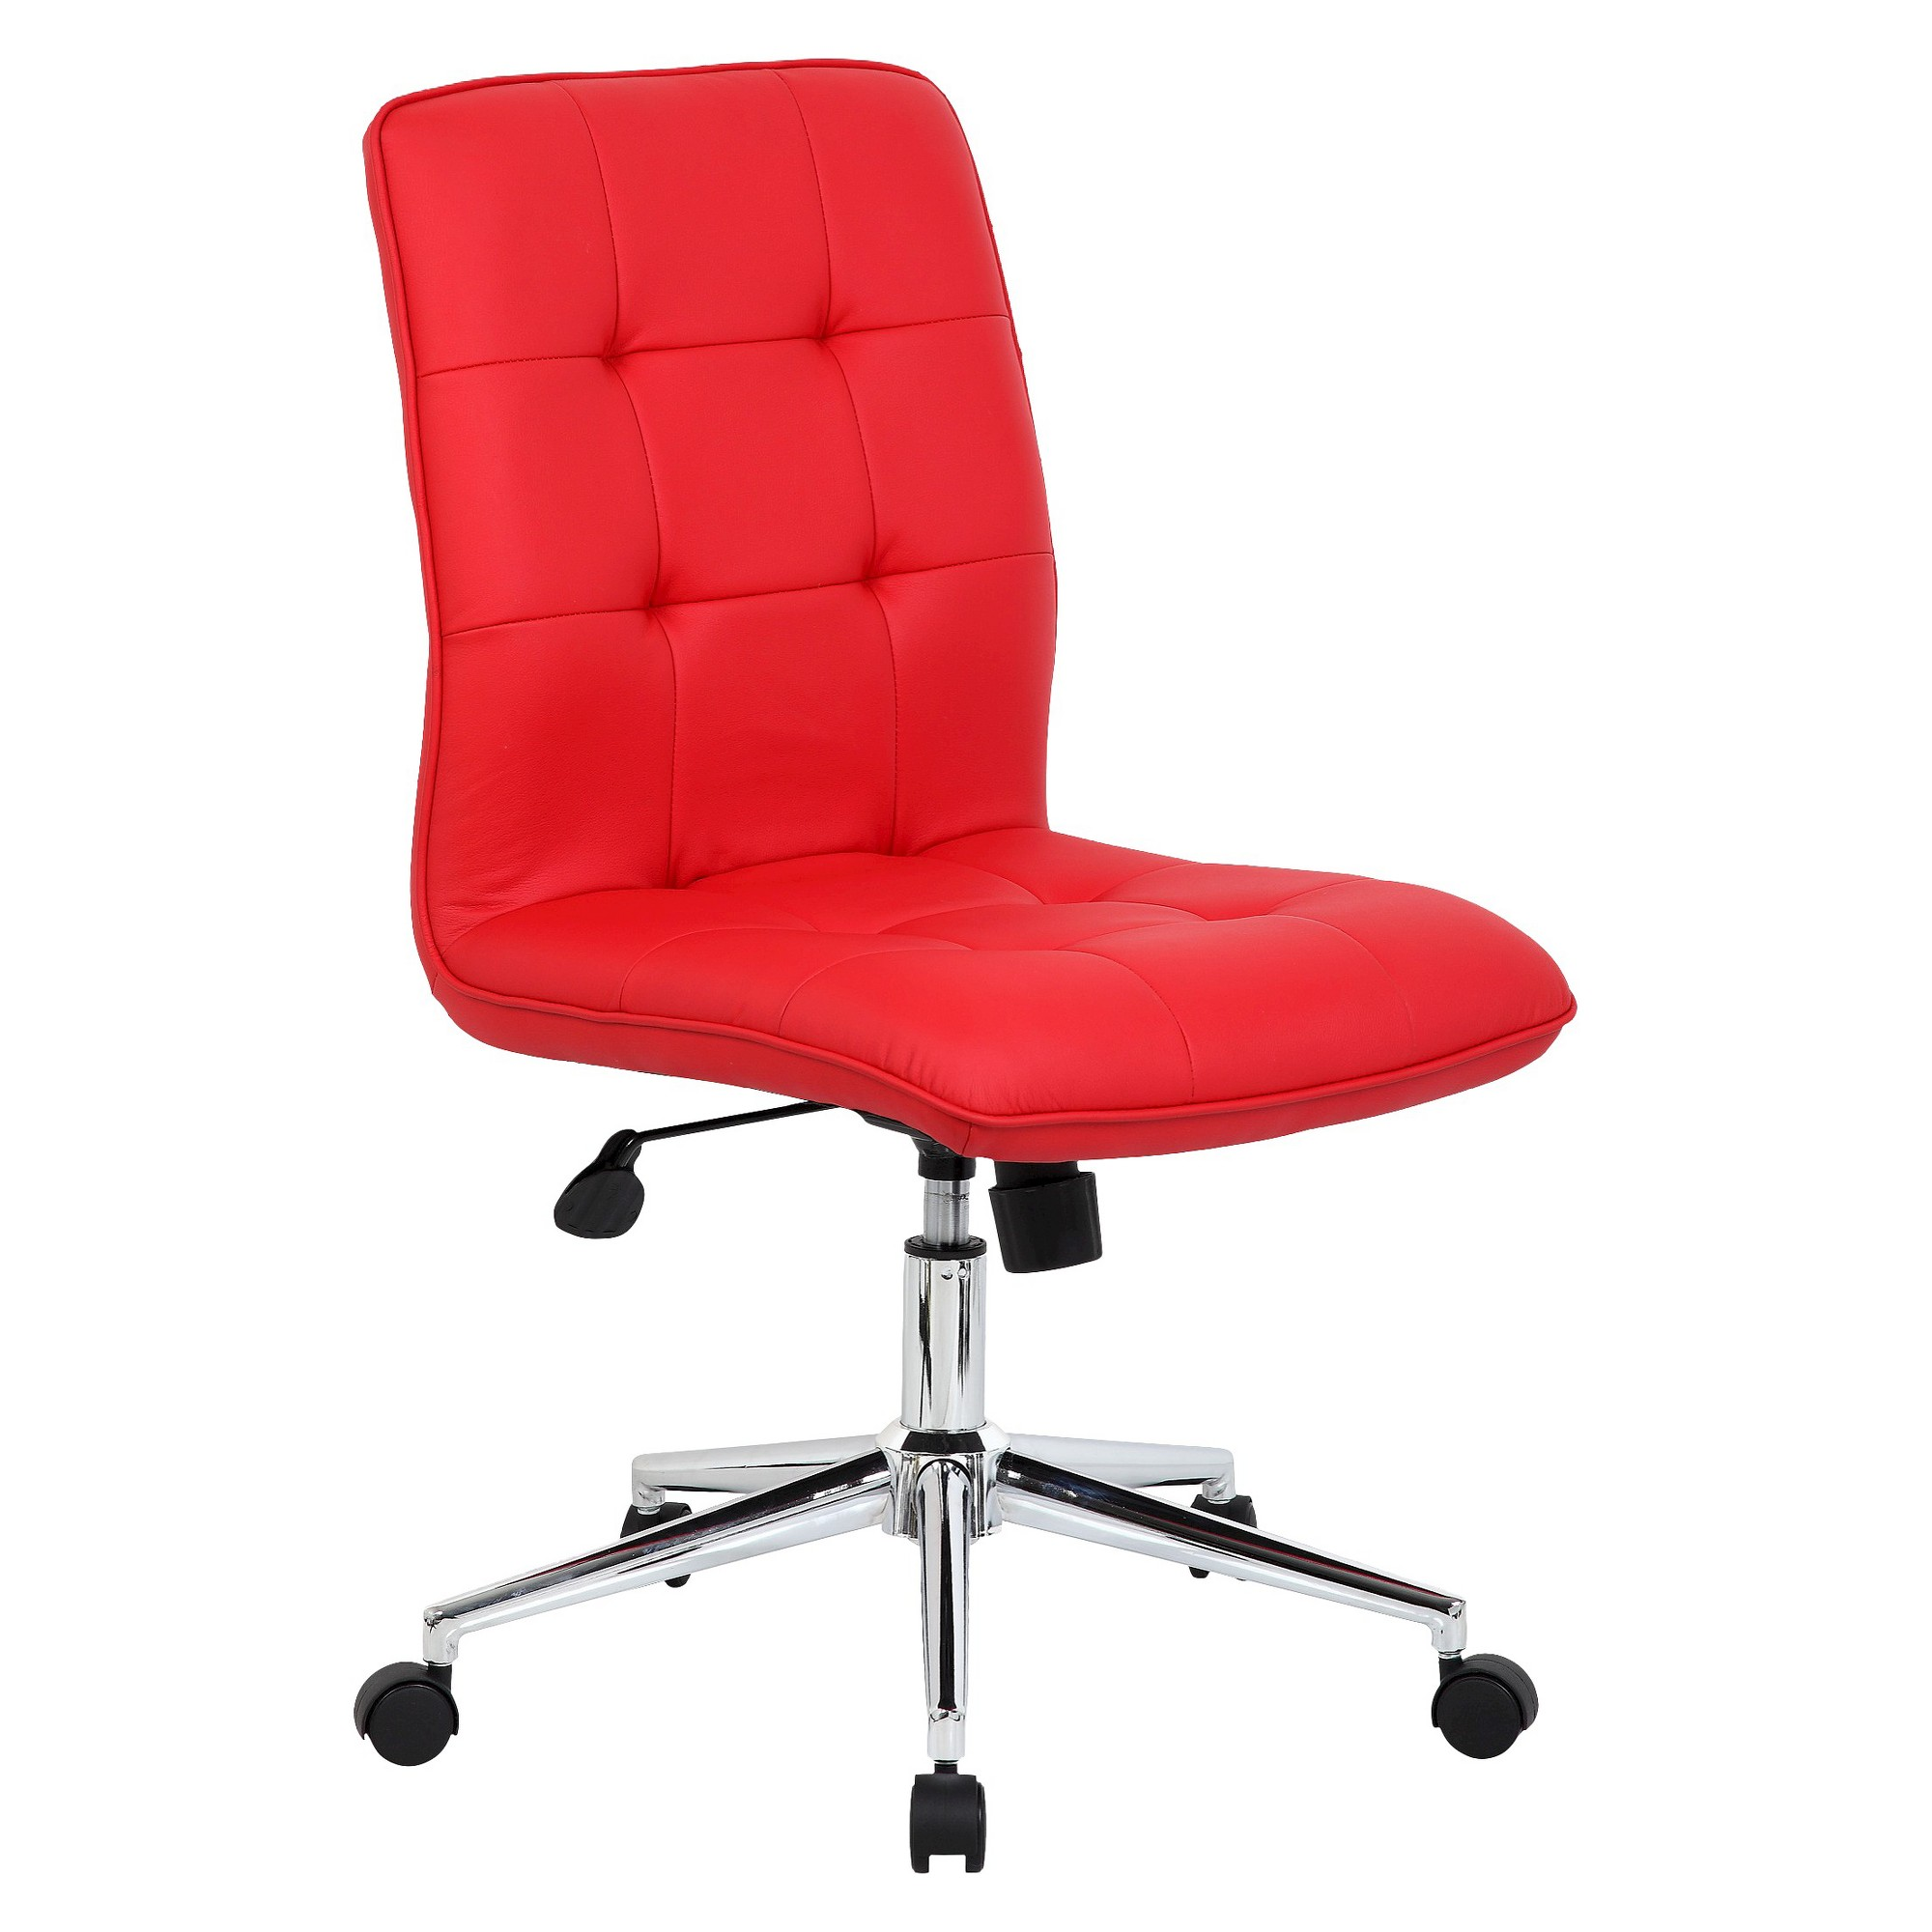 Modern Task Chair Red, Adult Unisex Adjustable office